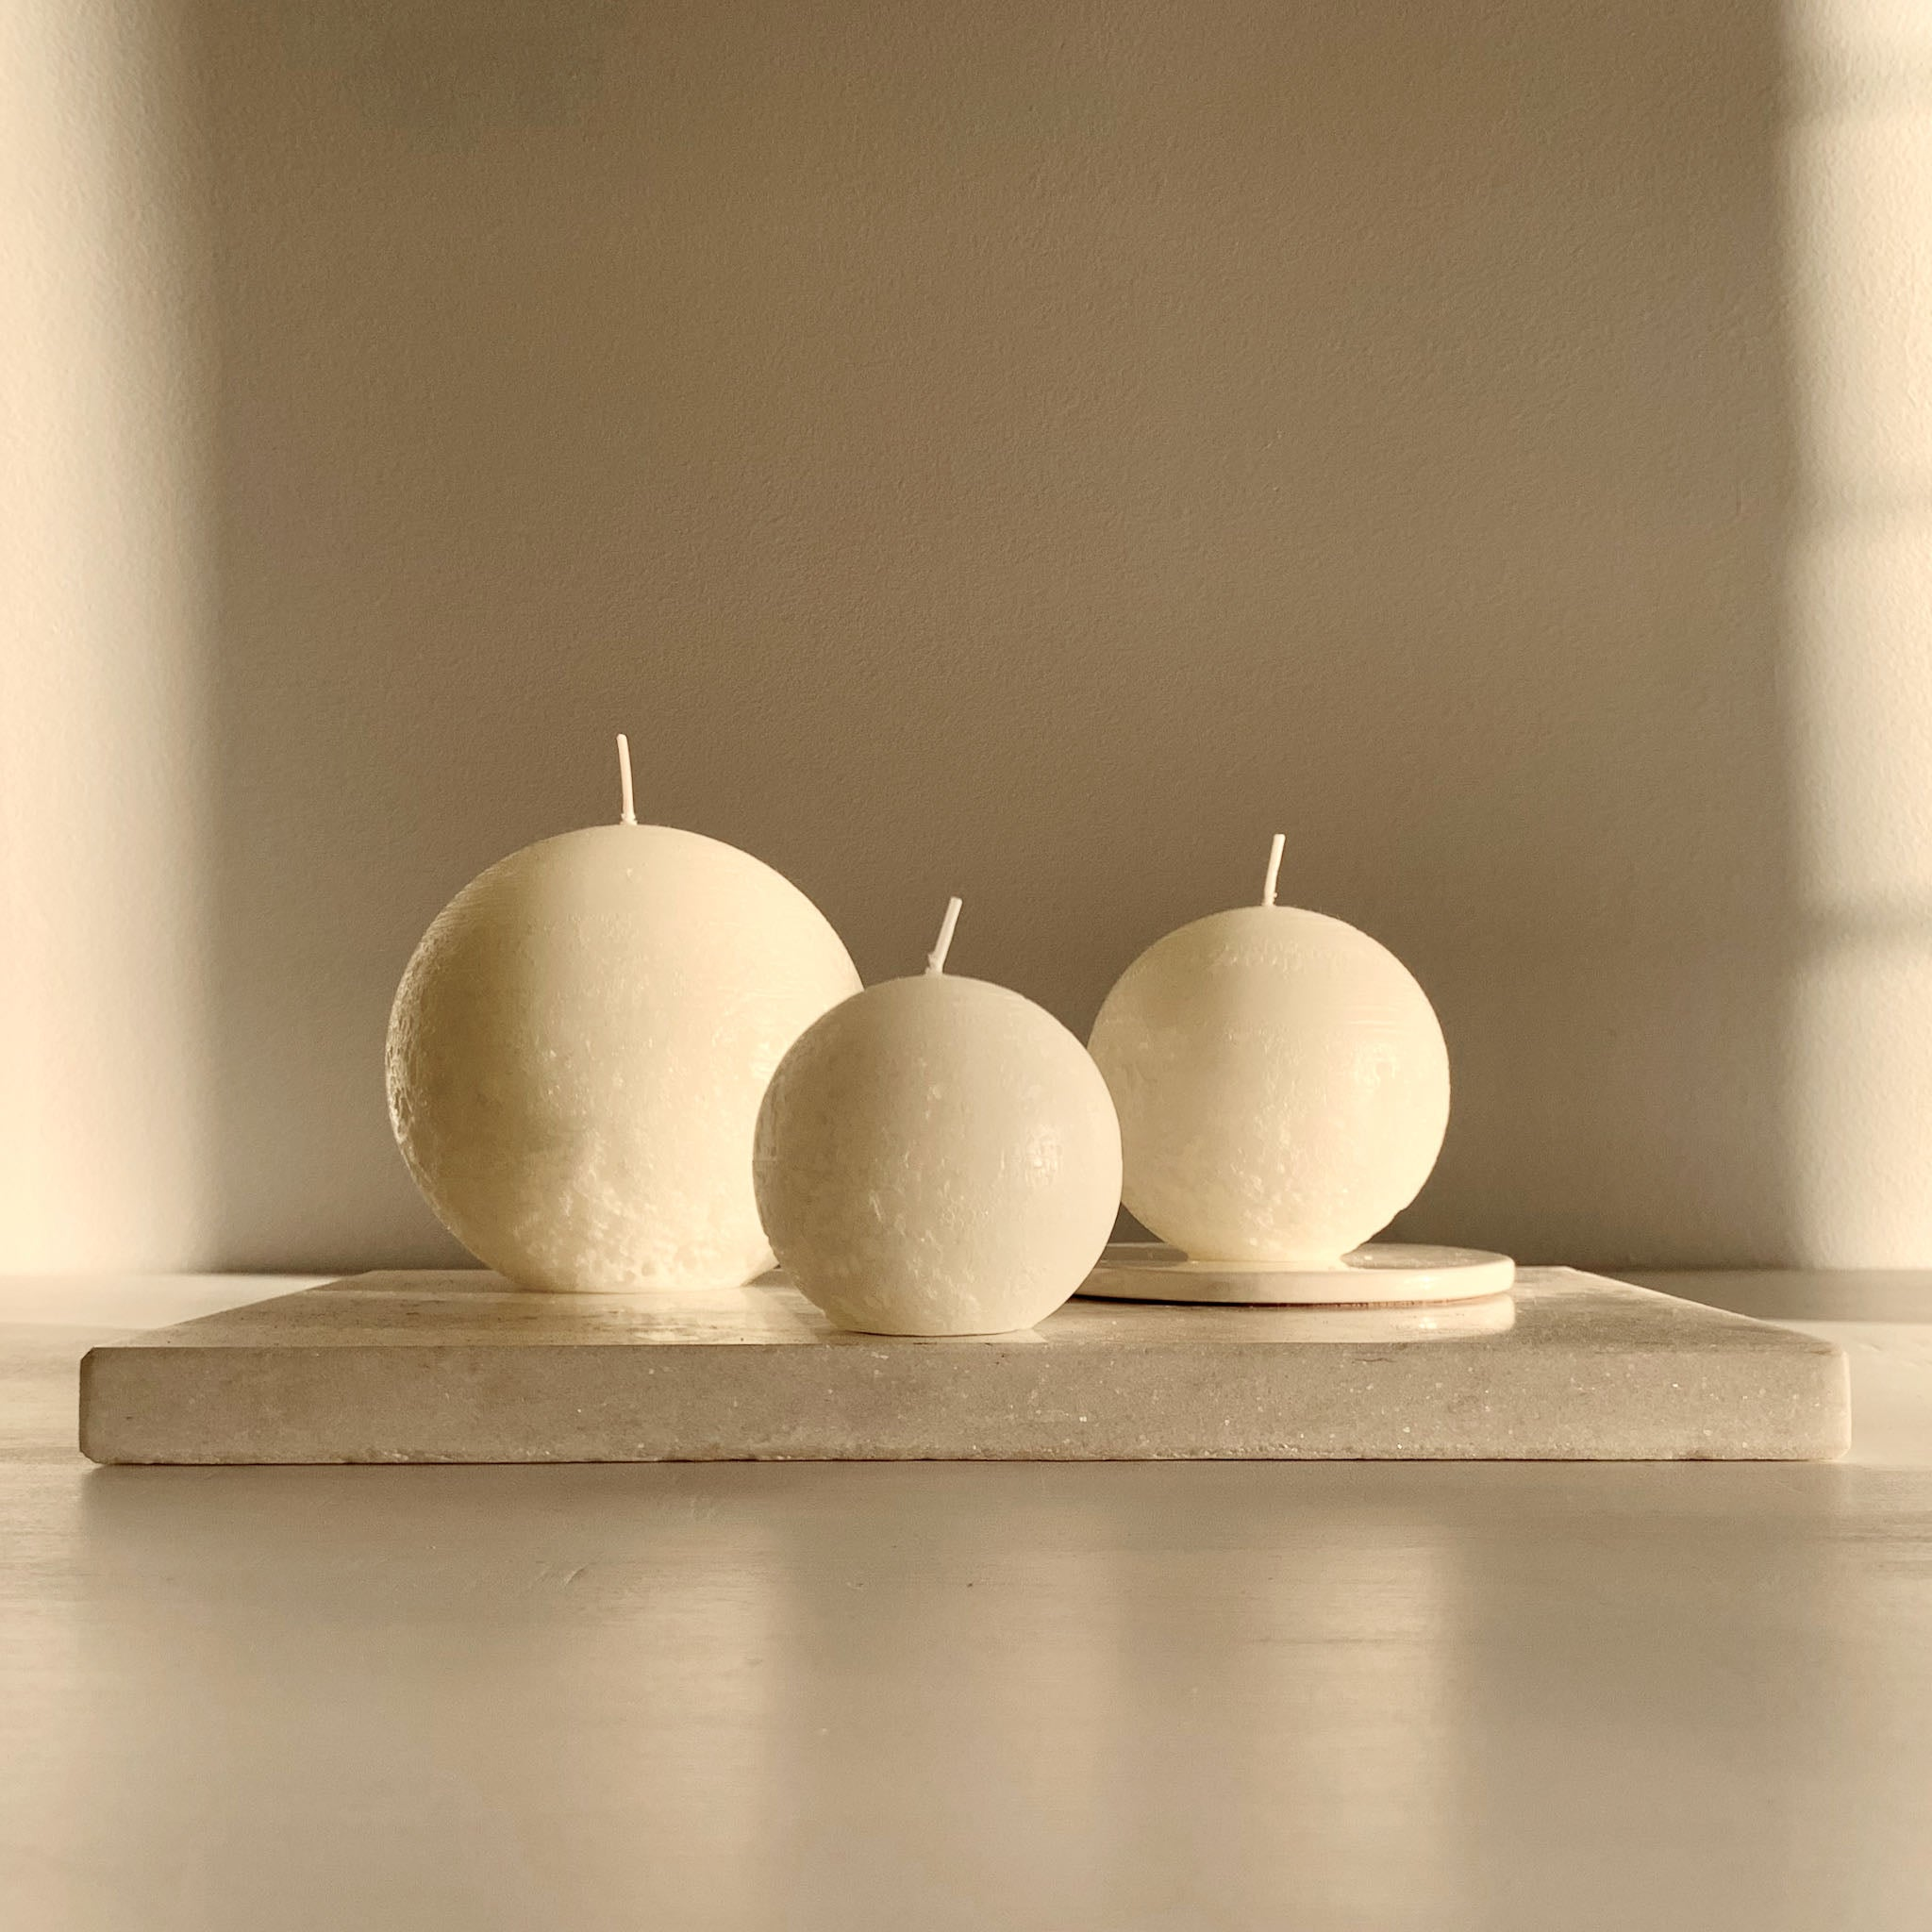 White rustic spherical candles